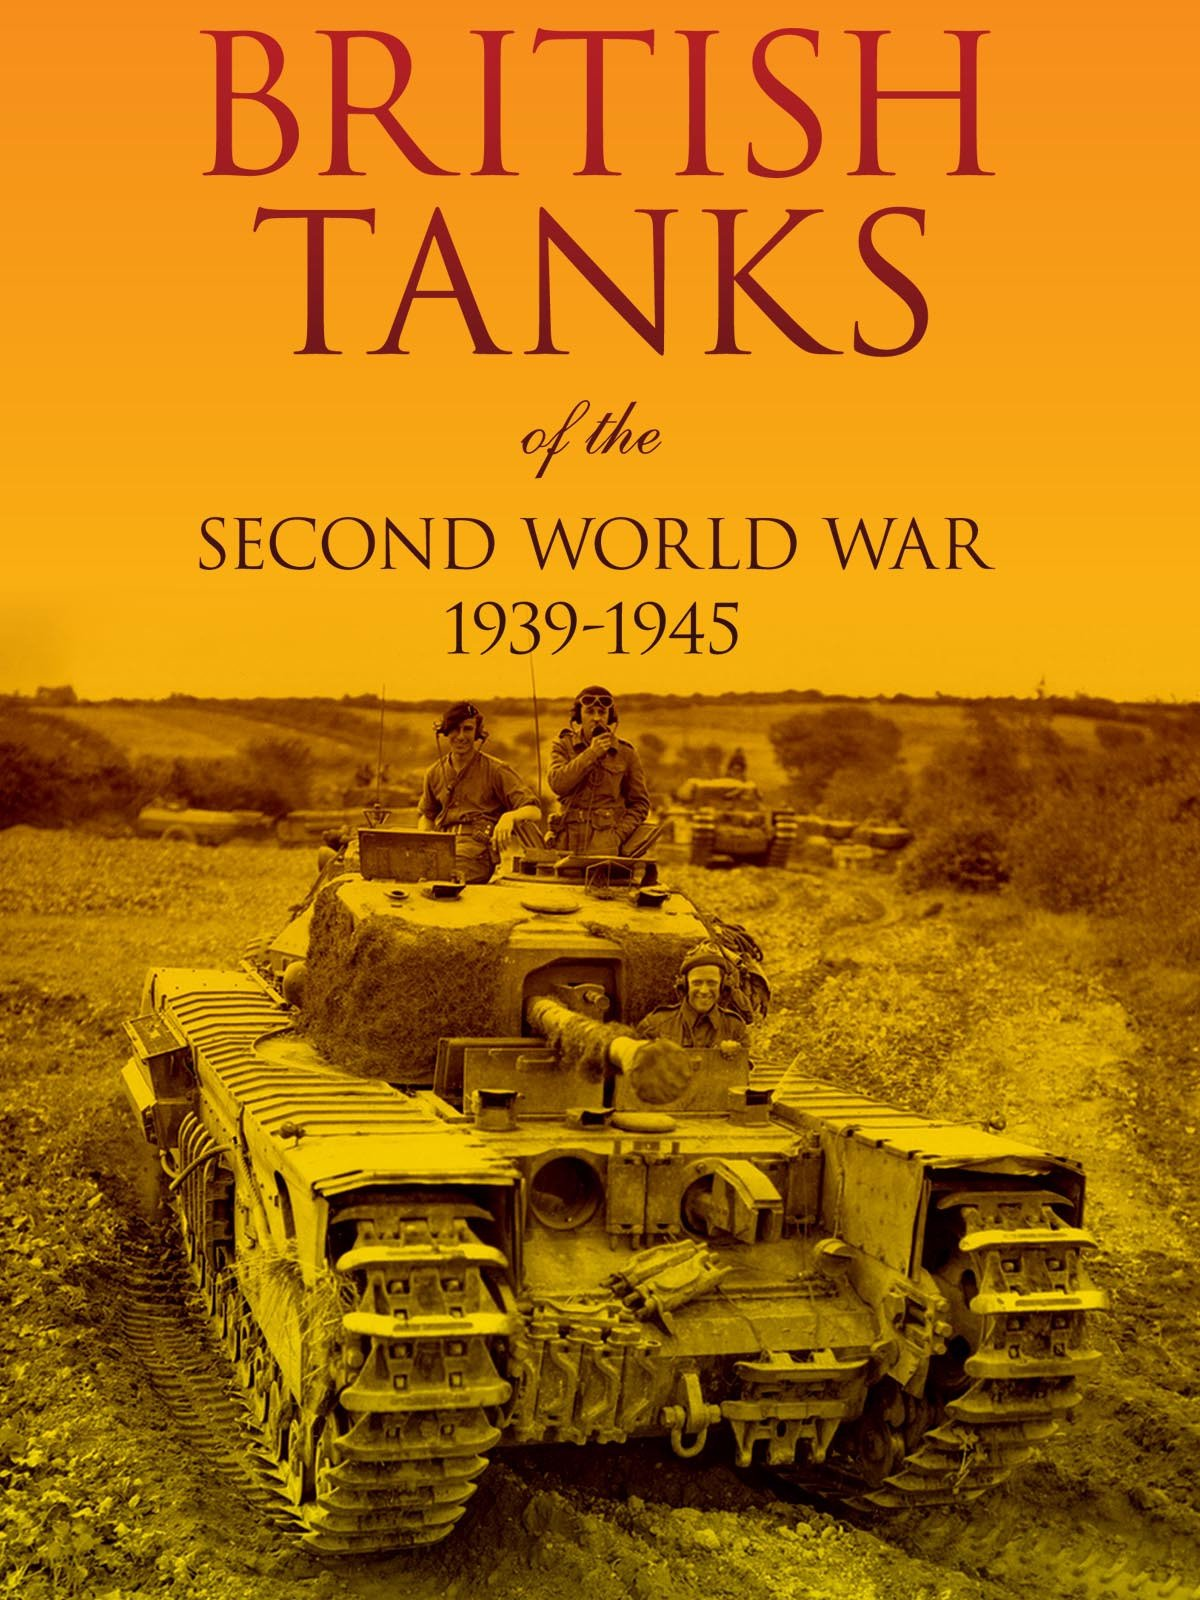 British Tanks of the Second World War 1939